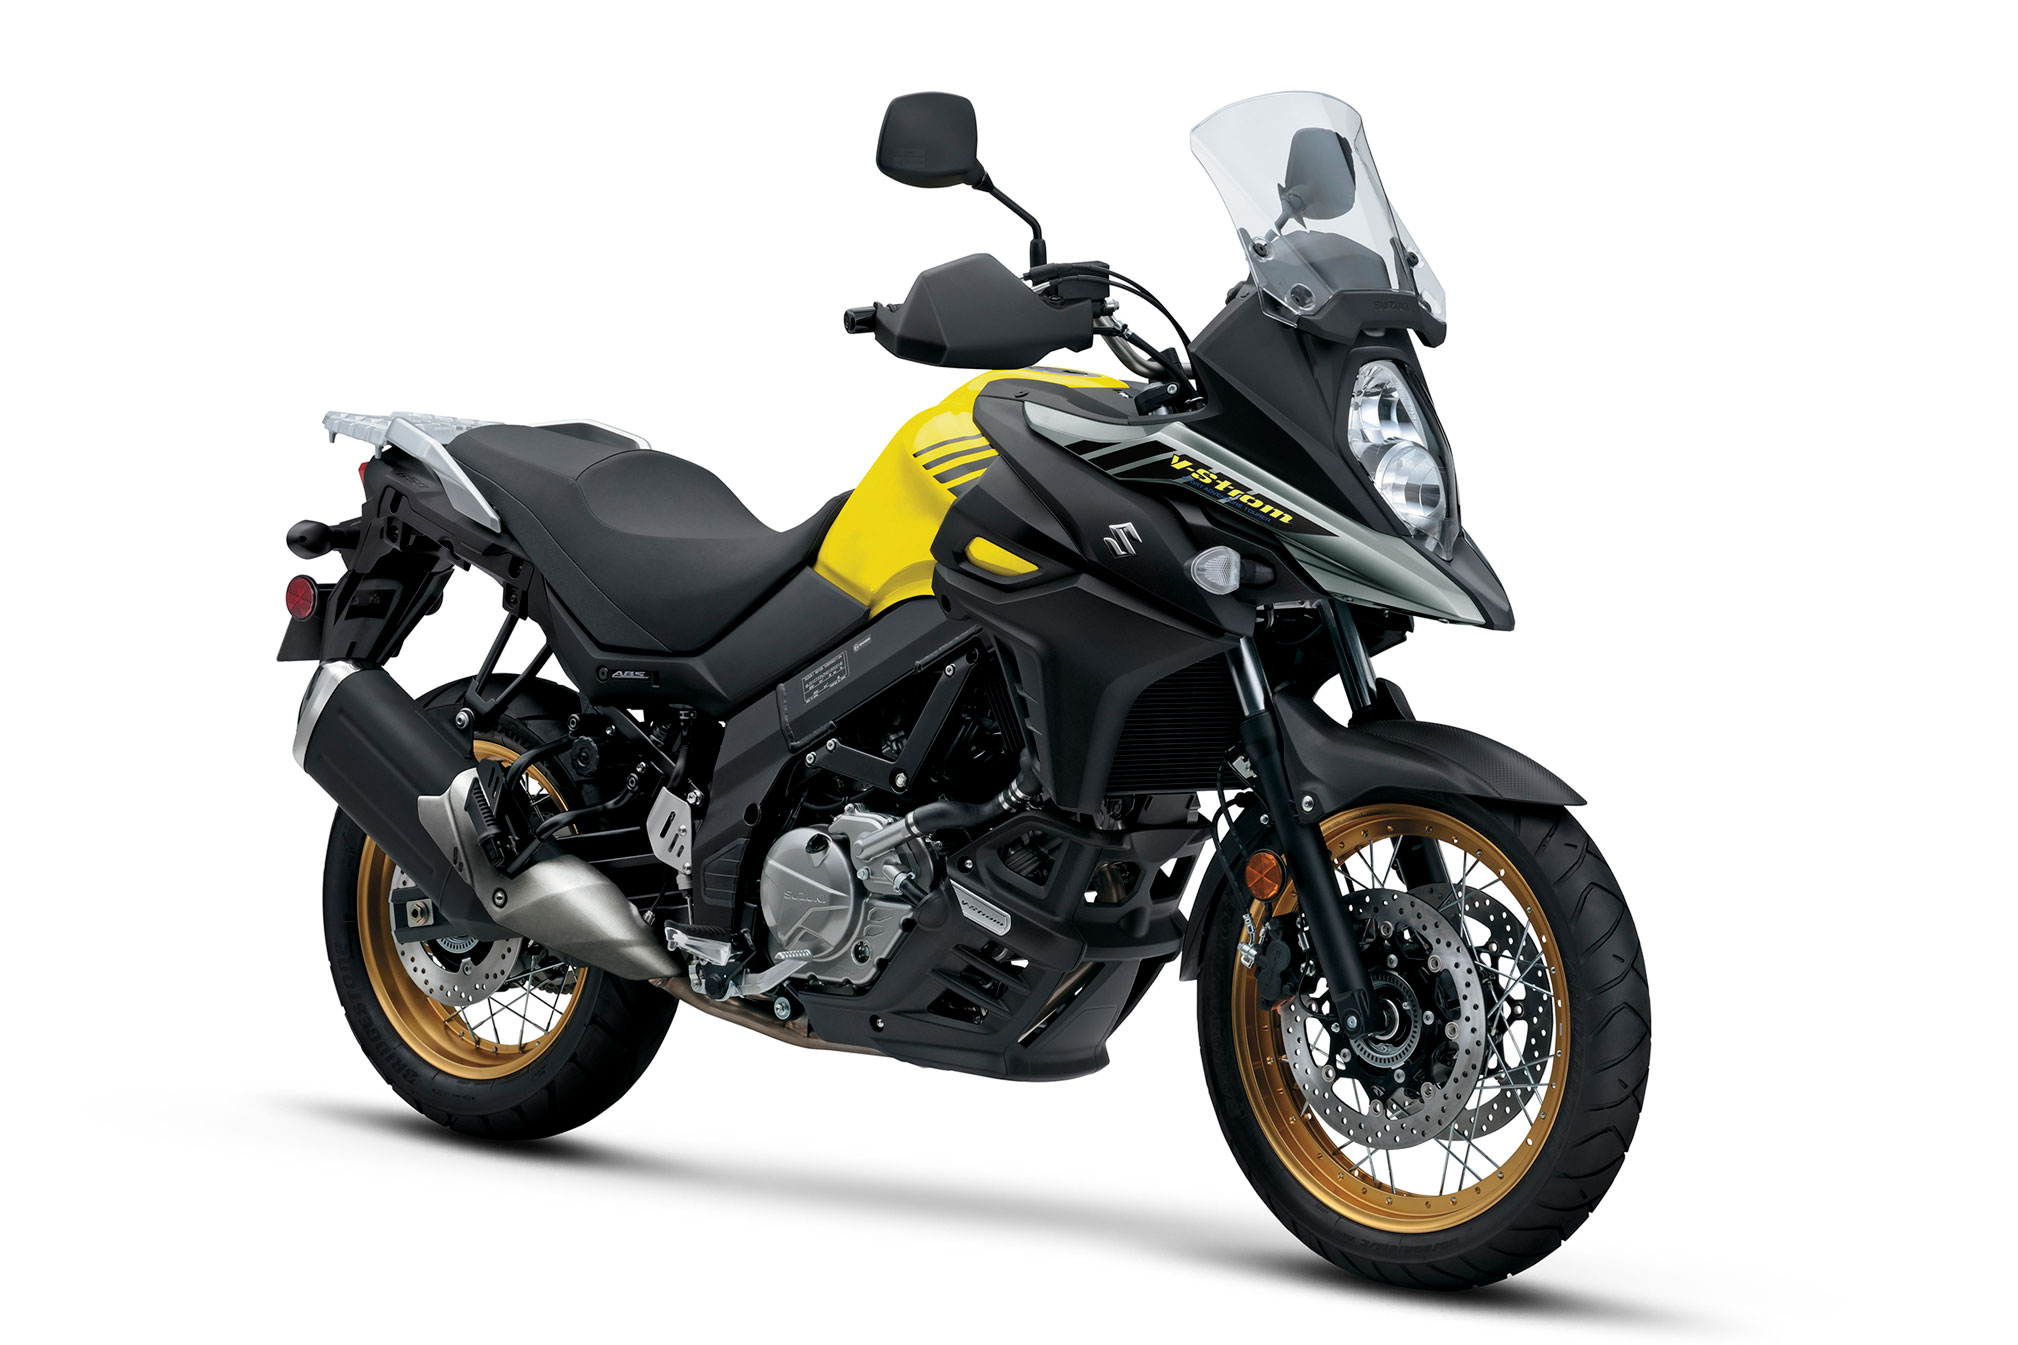 2018 suzuki v strom 650xt review totalmotorcycle. Black Bedroom Furniture Sets. Home Design Ideas